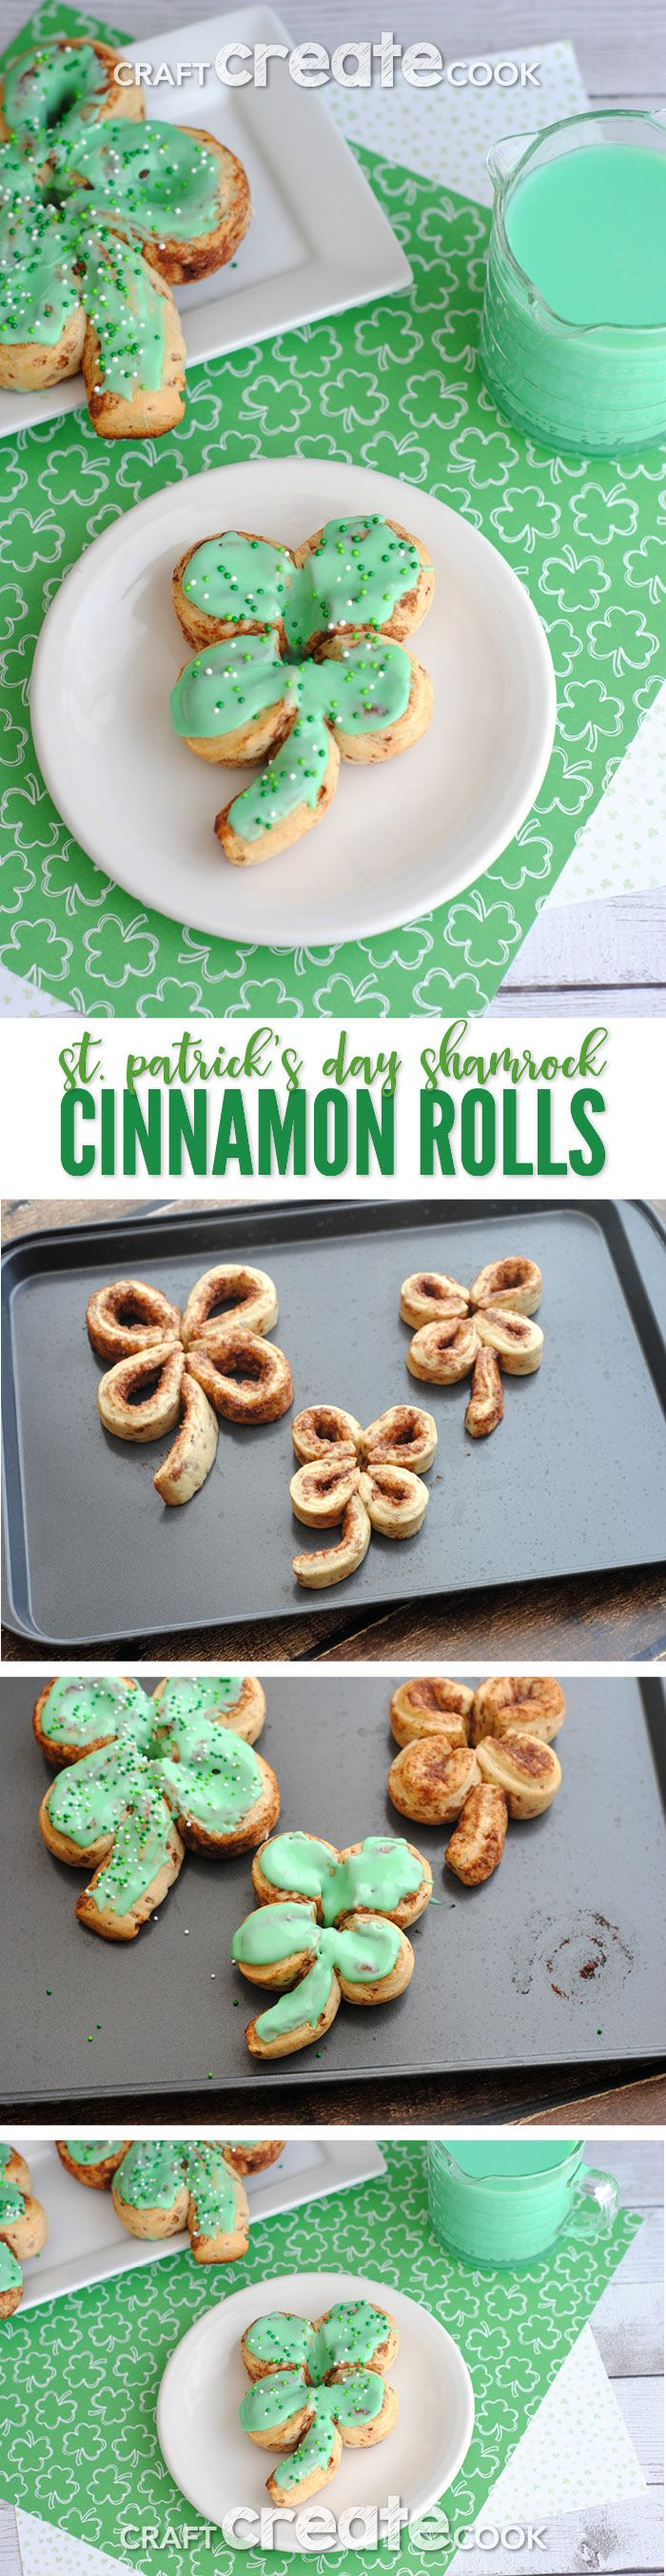 St. Patrick's Day Cinnamon Rolls are sure to be the luckiest breakfast! via @CraftCreatCook1